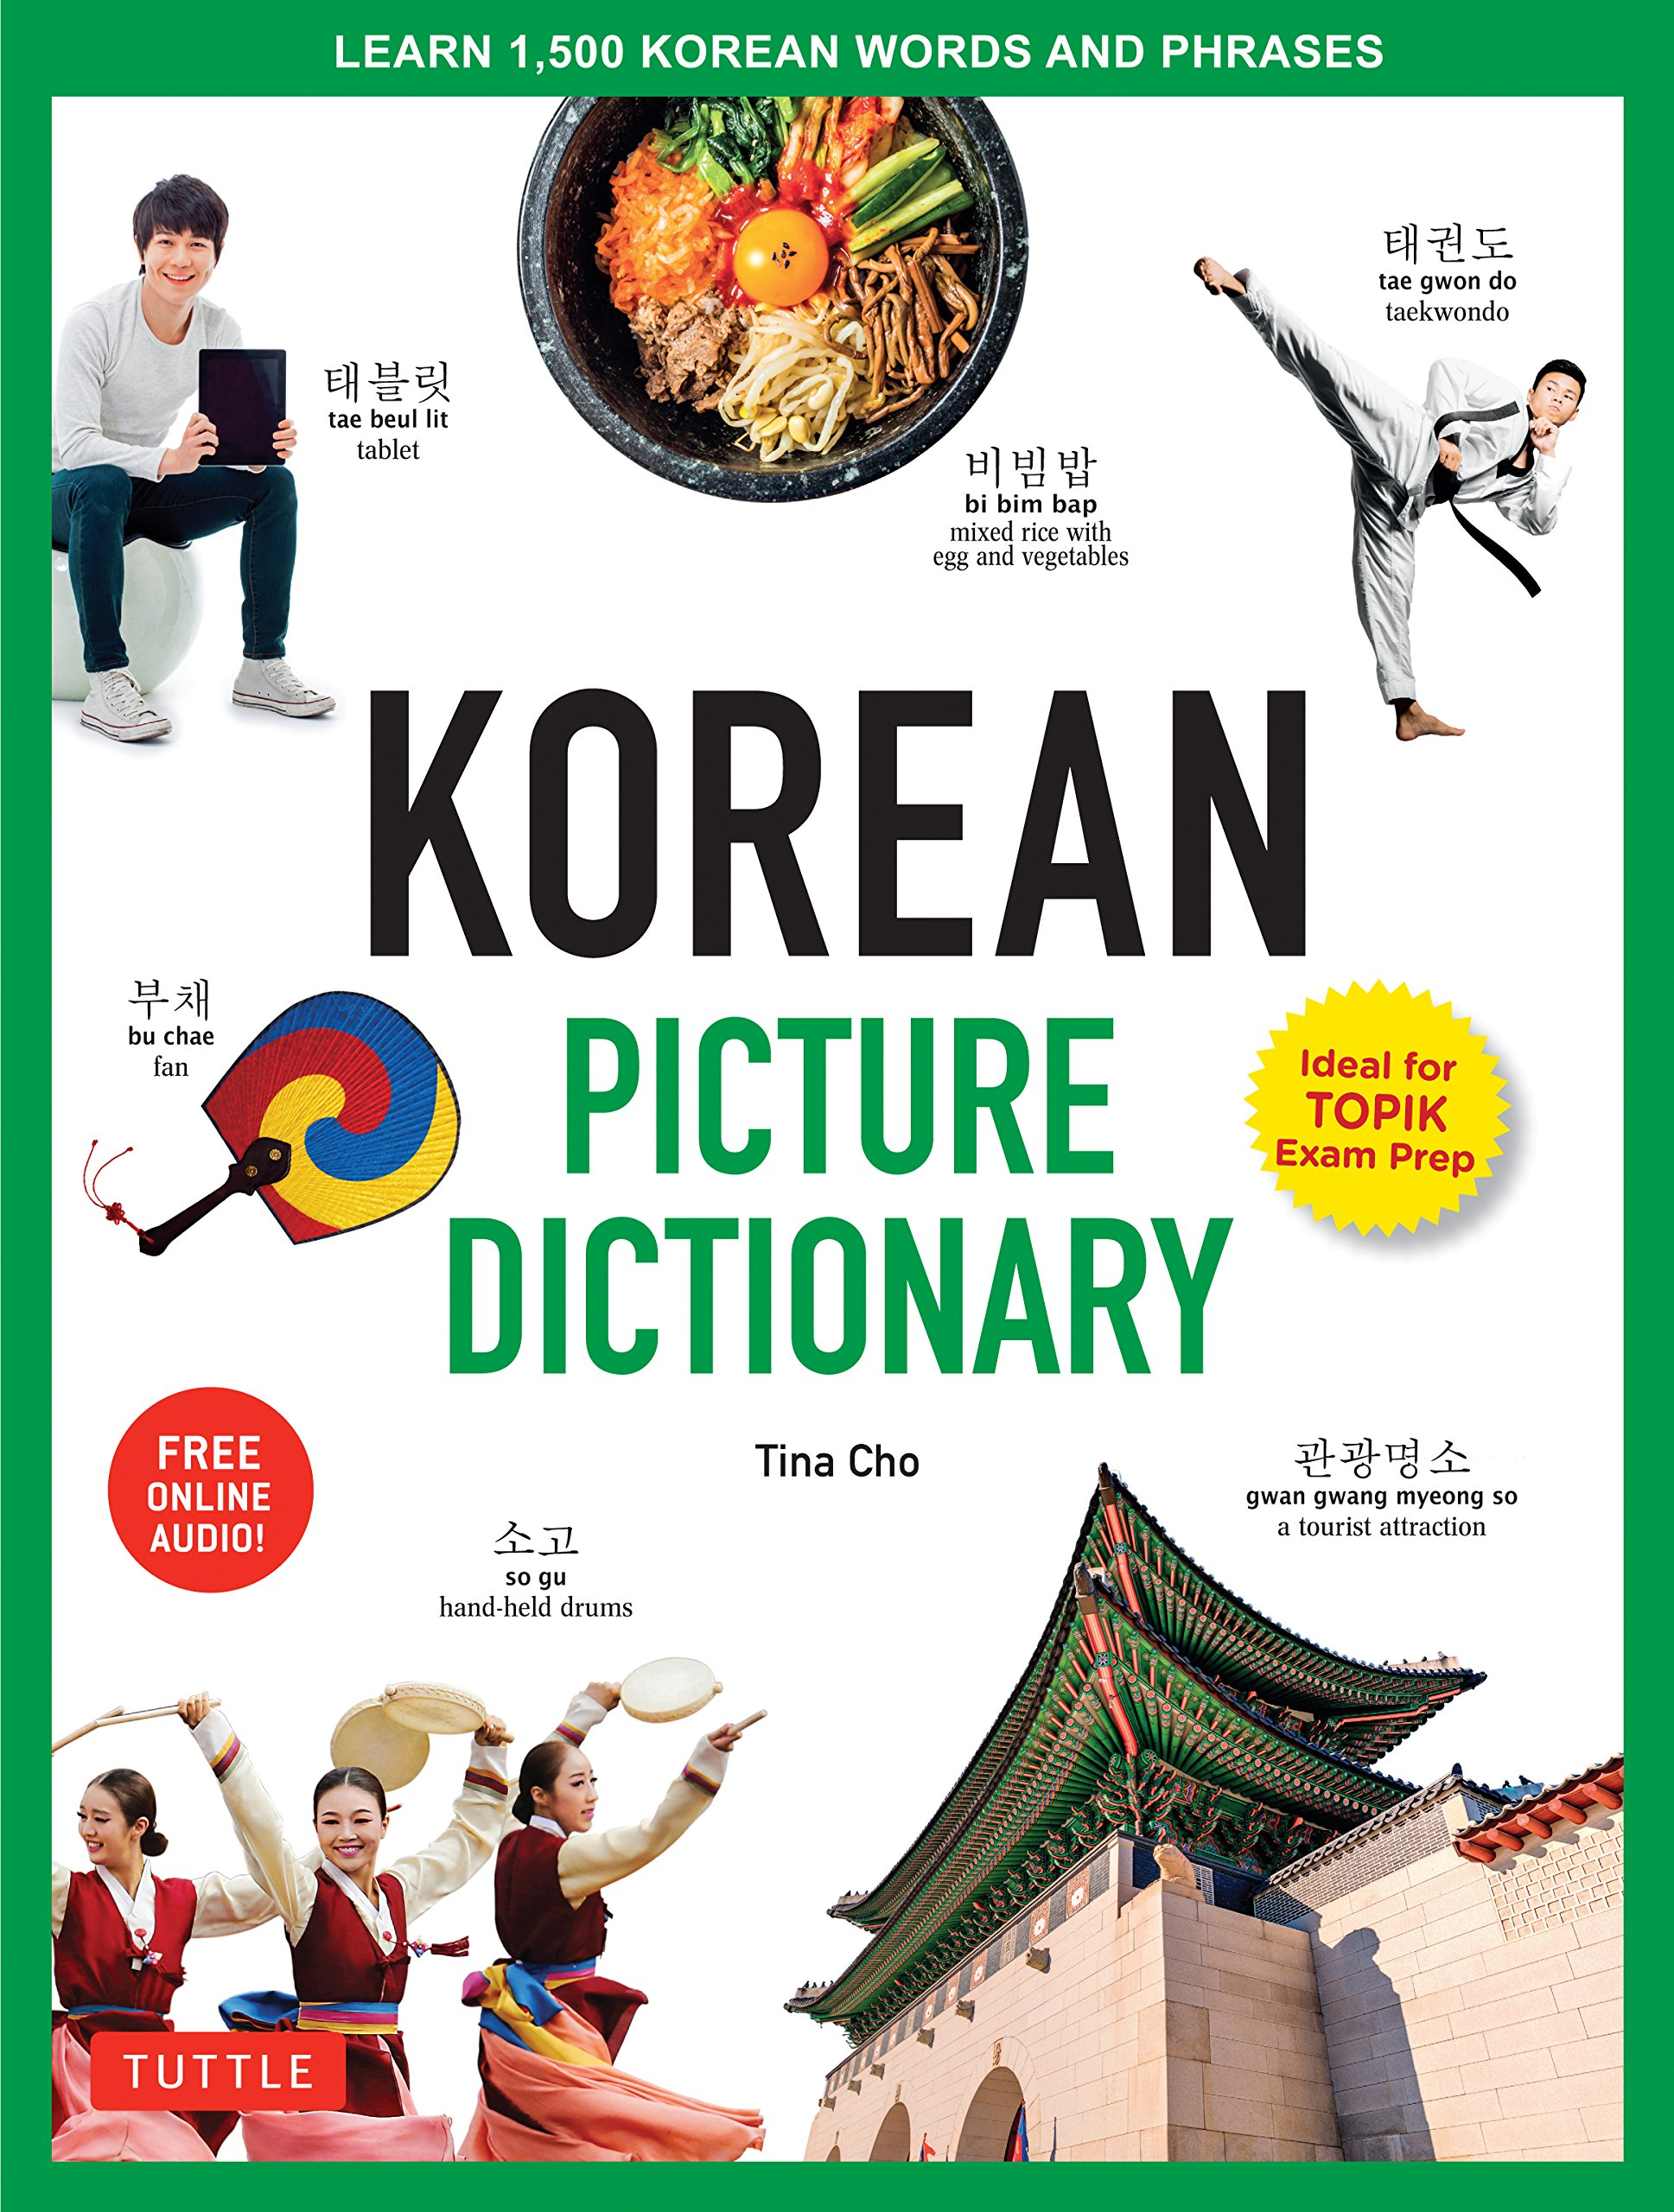 Korean Picture Dictionary: Learn 1,500 Korean Words and Phrases - Ideal for TOPIK Exam Prep [Includes Online Audio] (Tuttle Picture Dictionary)